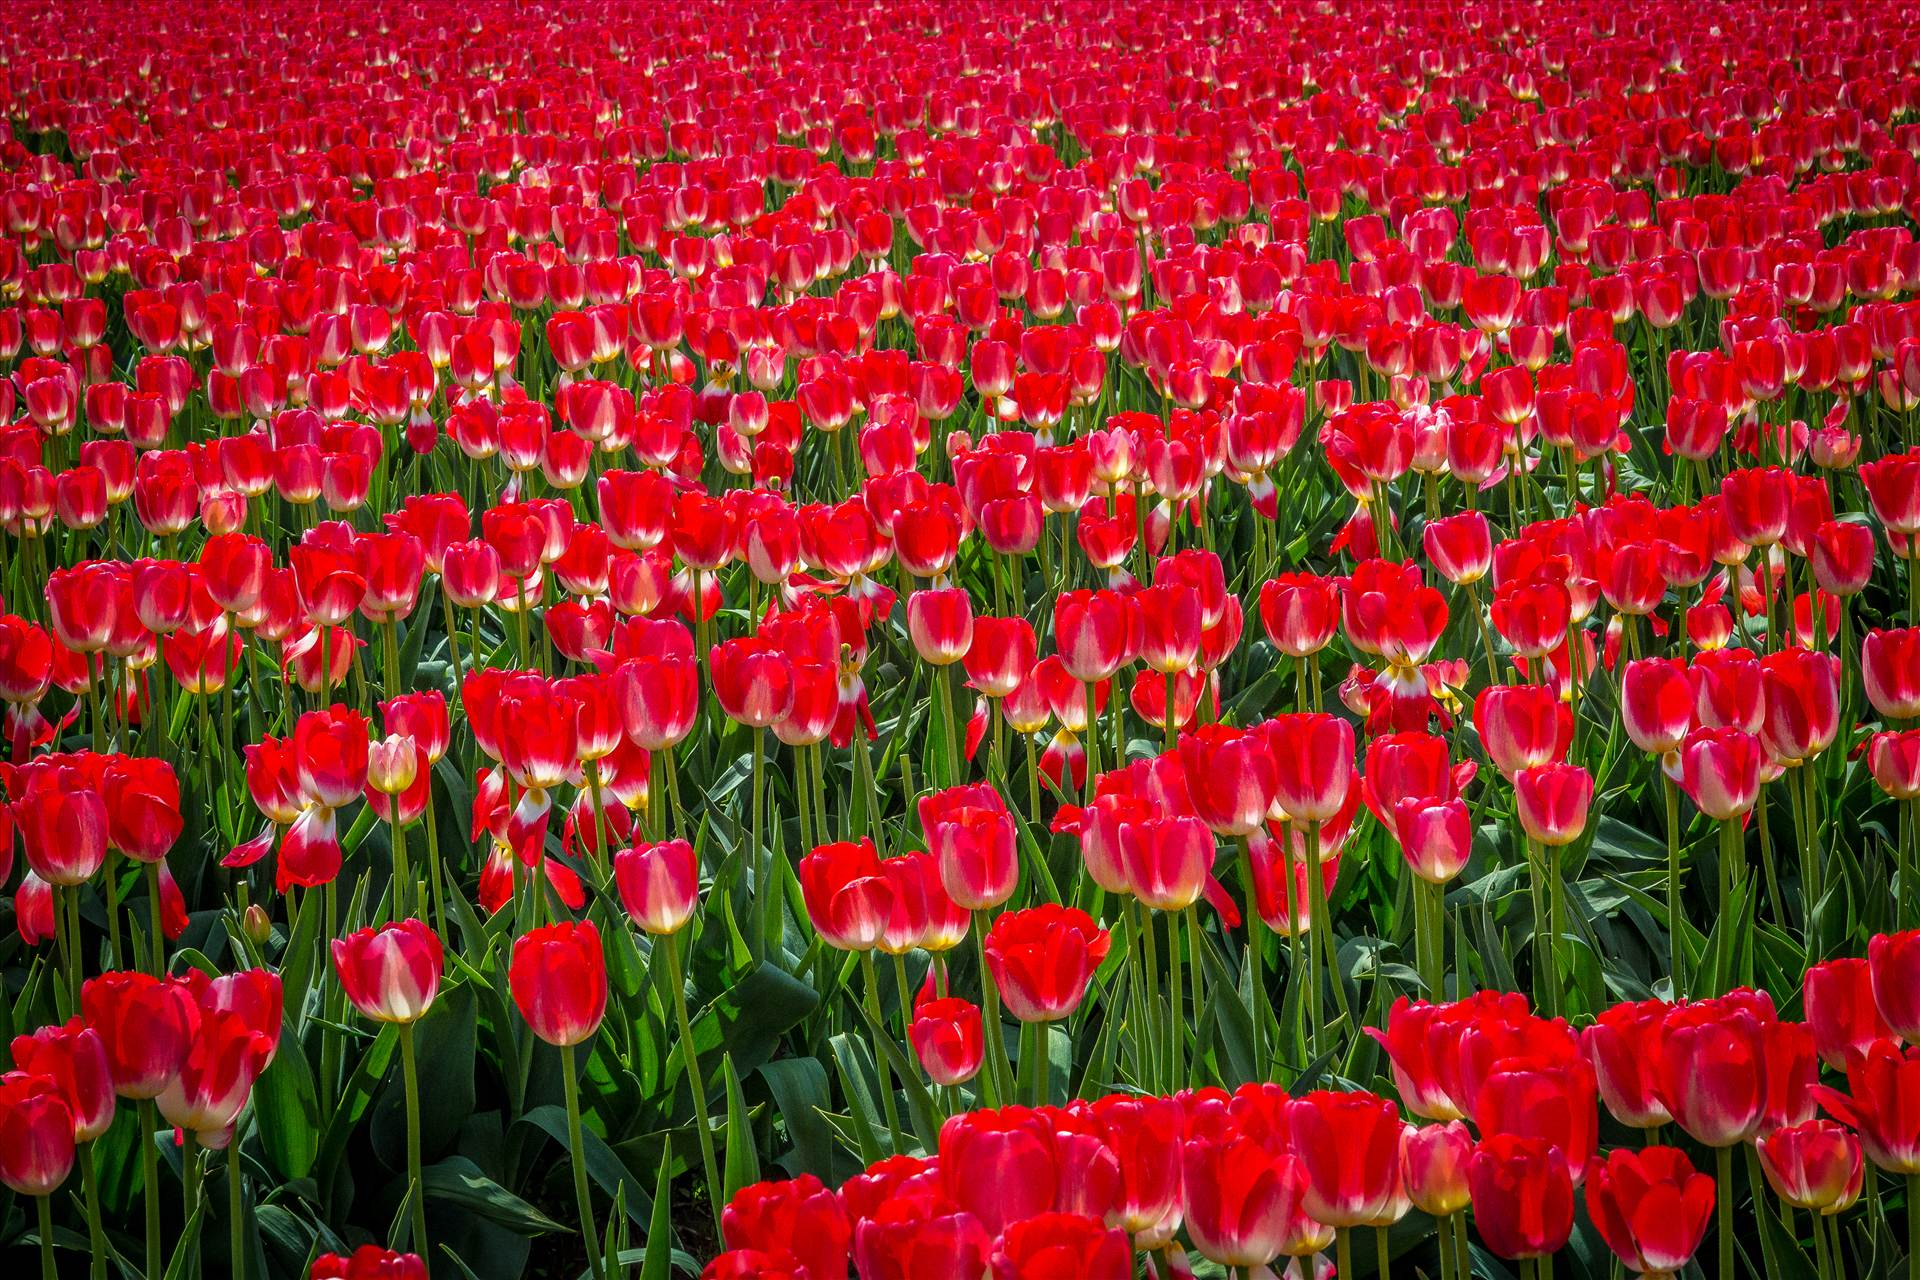 Sea of Red Tulips - From the Skagit County Tulip Festival in Washington state. by Scott Smith Photos